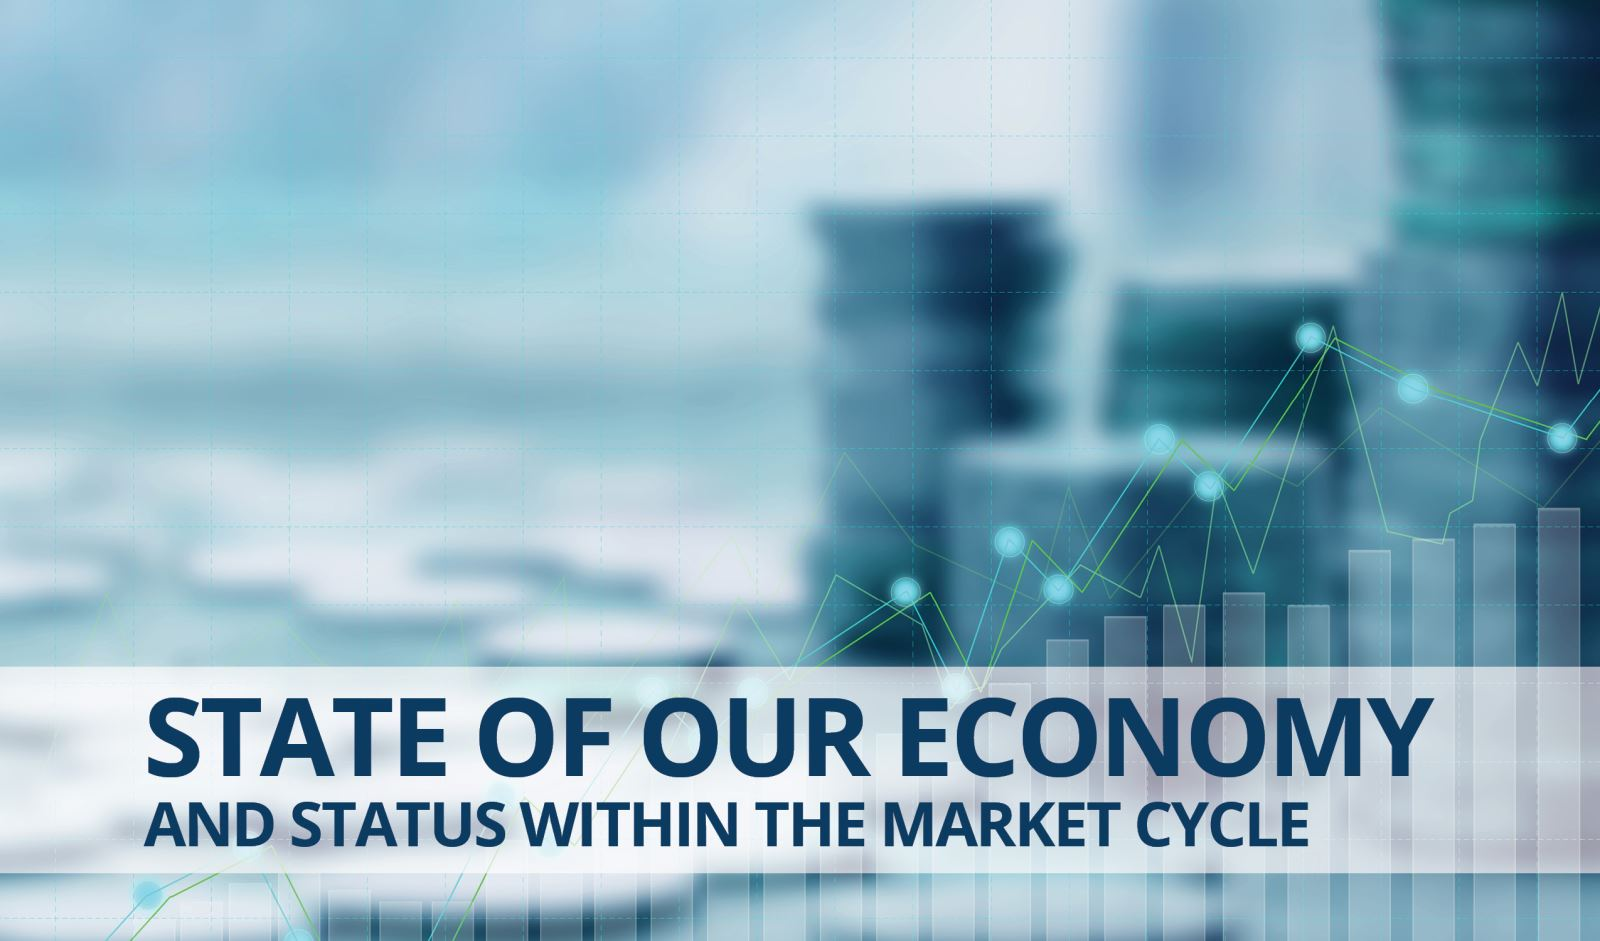 State of our Economy and Status within the Market Cycle - State of ...